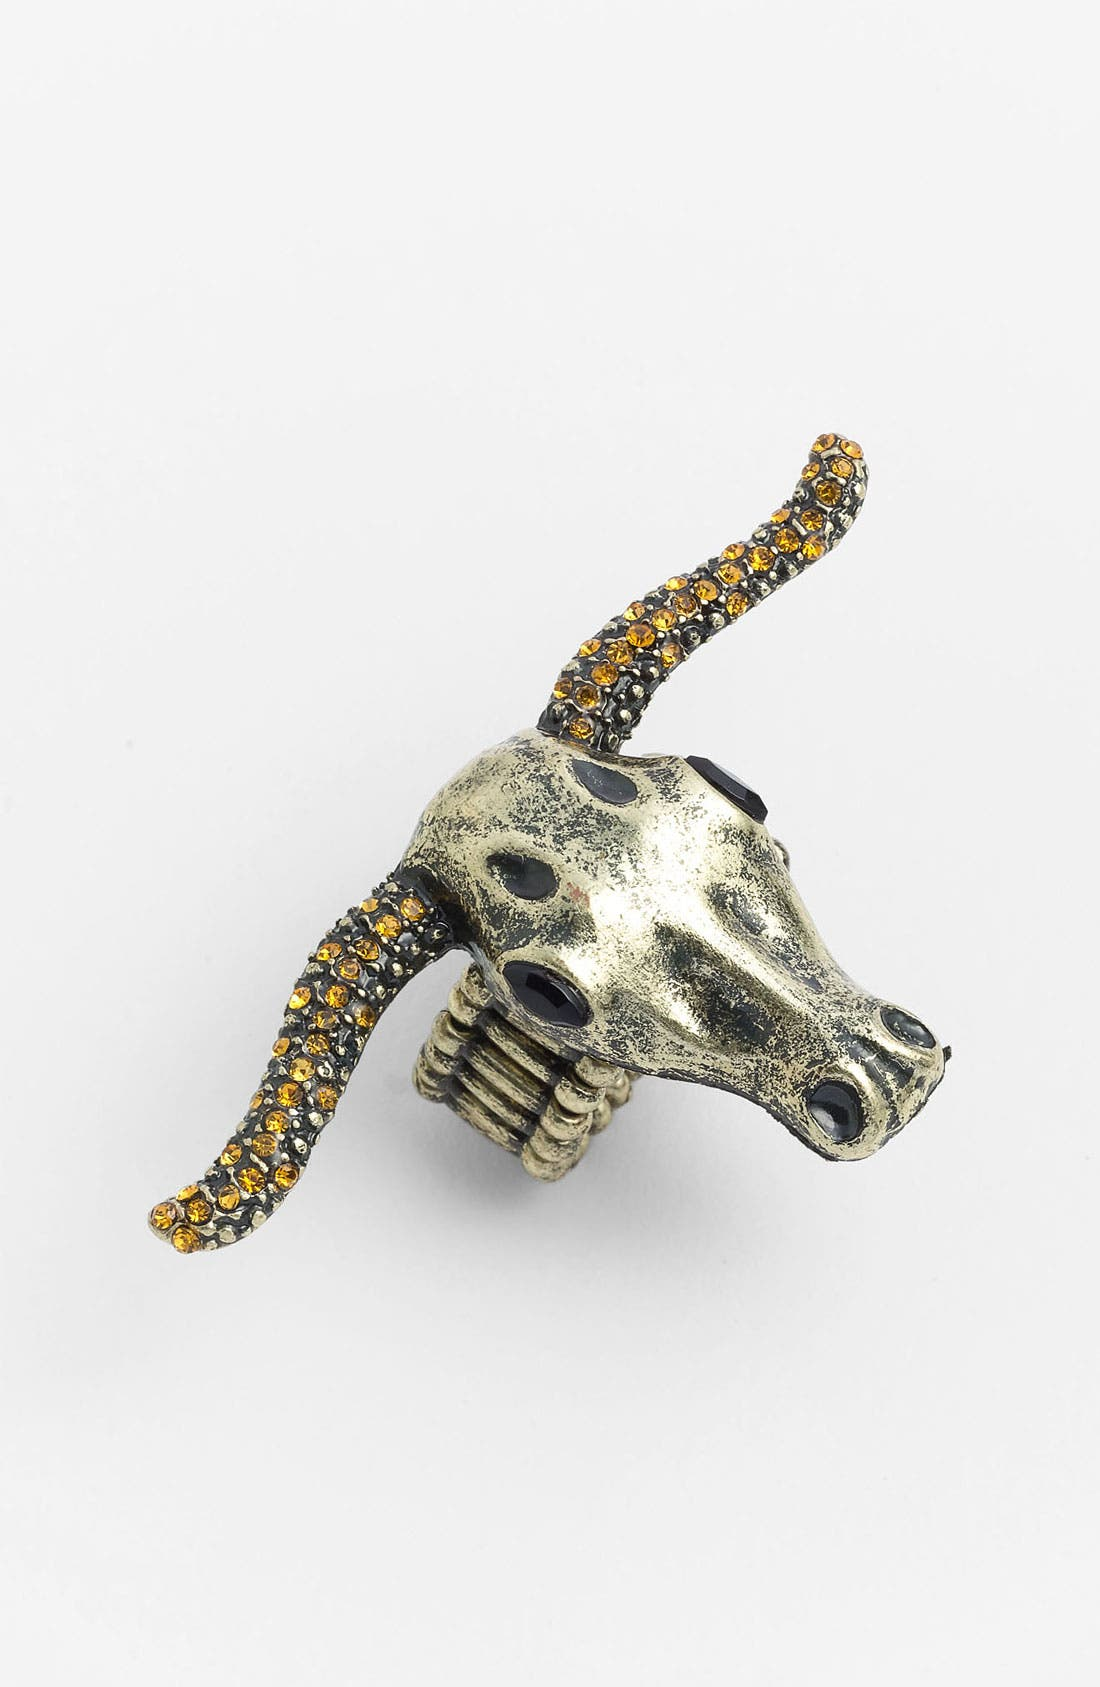 Alternate Image 1 Selected - Carole Rhinestone Longhorn Skull Ring (Online Only)